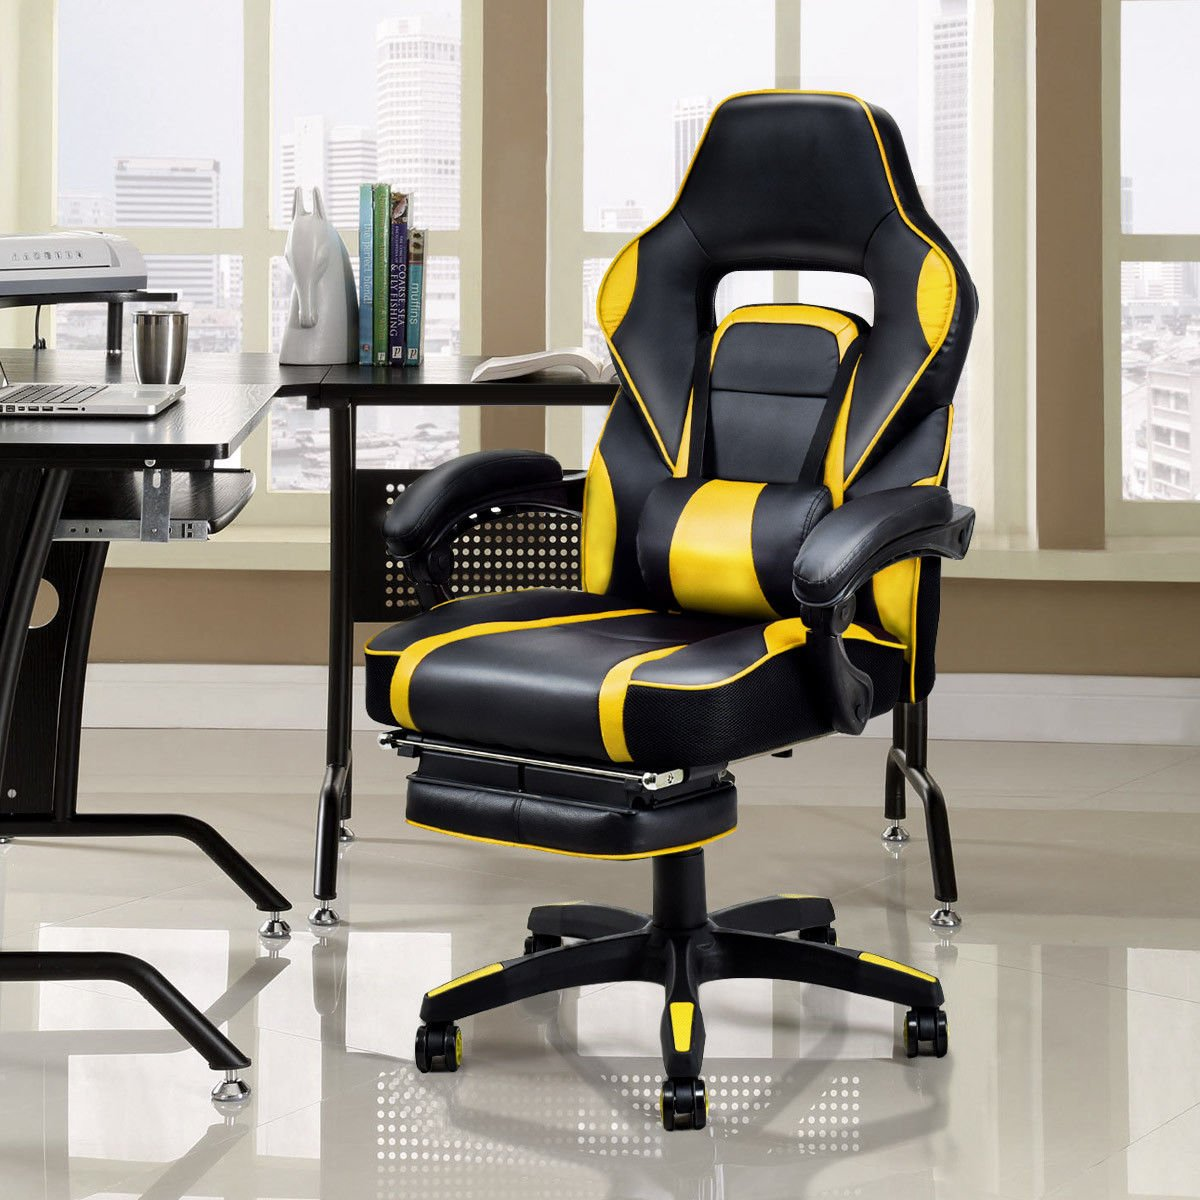 Giantex Gaming Chair Racing Chair Ergonomic High-Back with Footrest and Lumbar Support Adjusting Swivel Executive Office Desk Gaming Chair (Yellow)